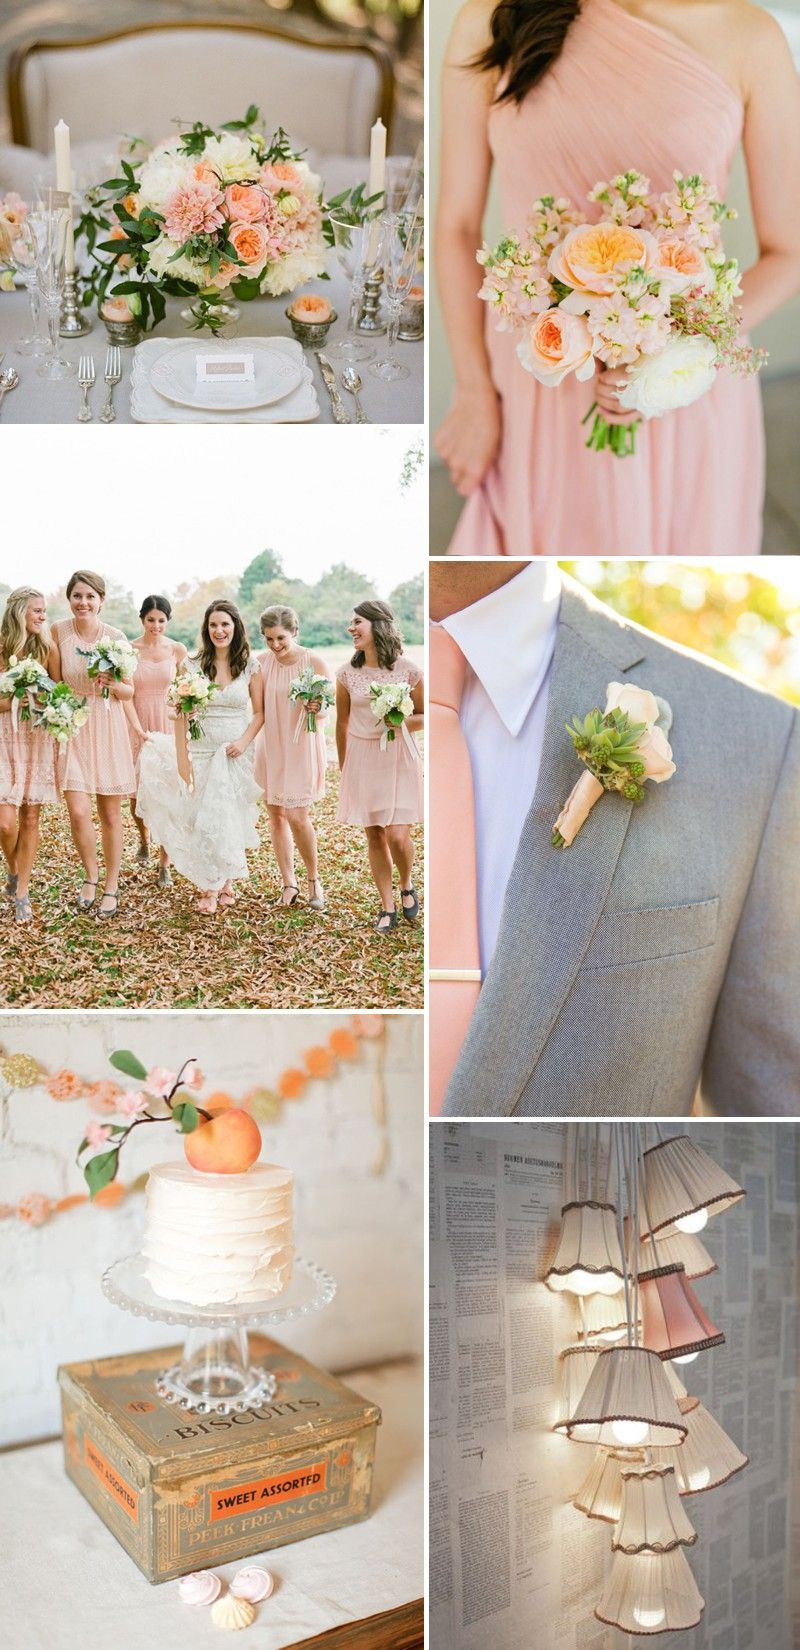 How To Create A Peach Colour Themed Wedding Using Flowers Bridesmaids Cakes And Decor 0004 Story Peaches Cream